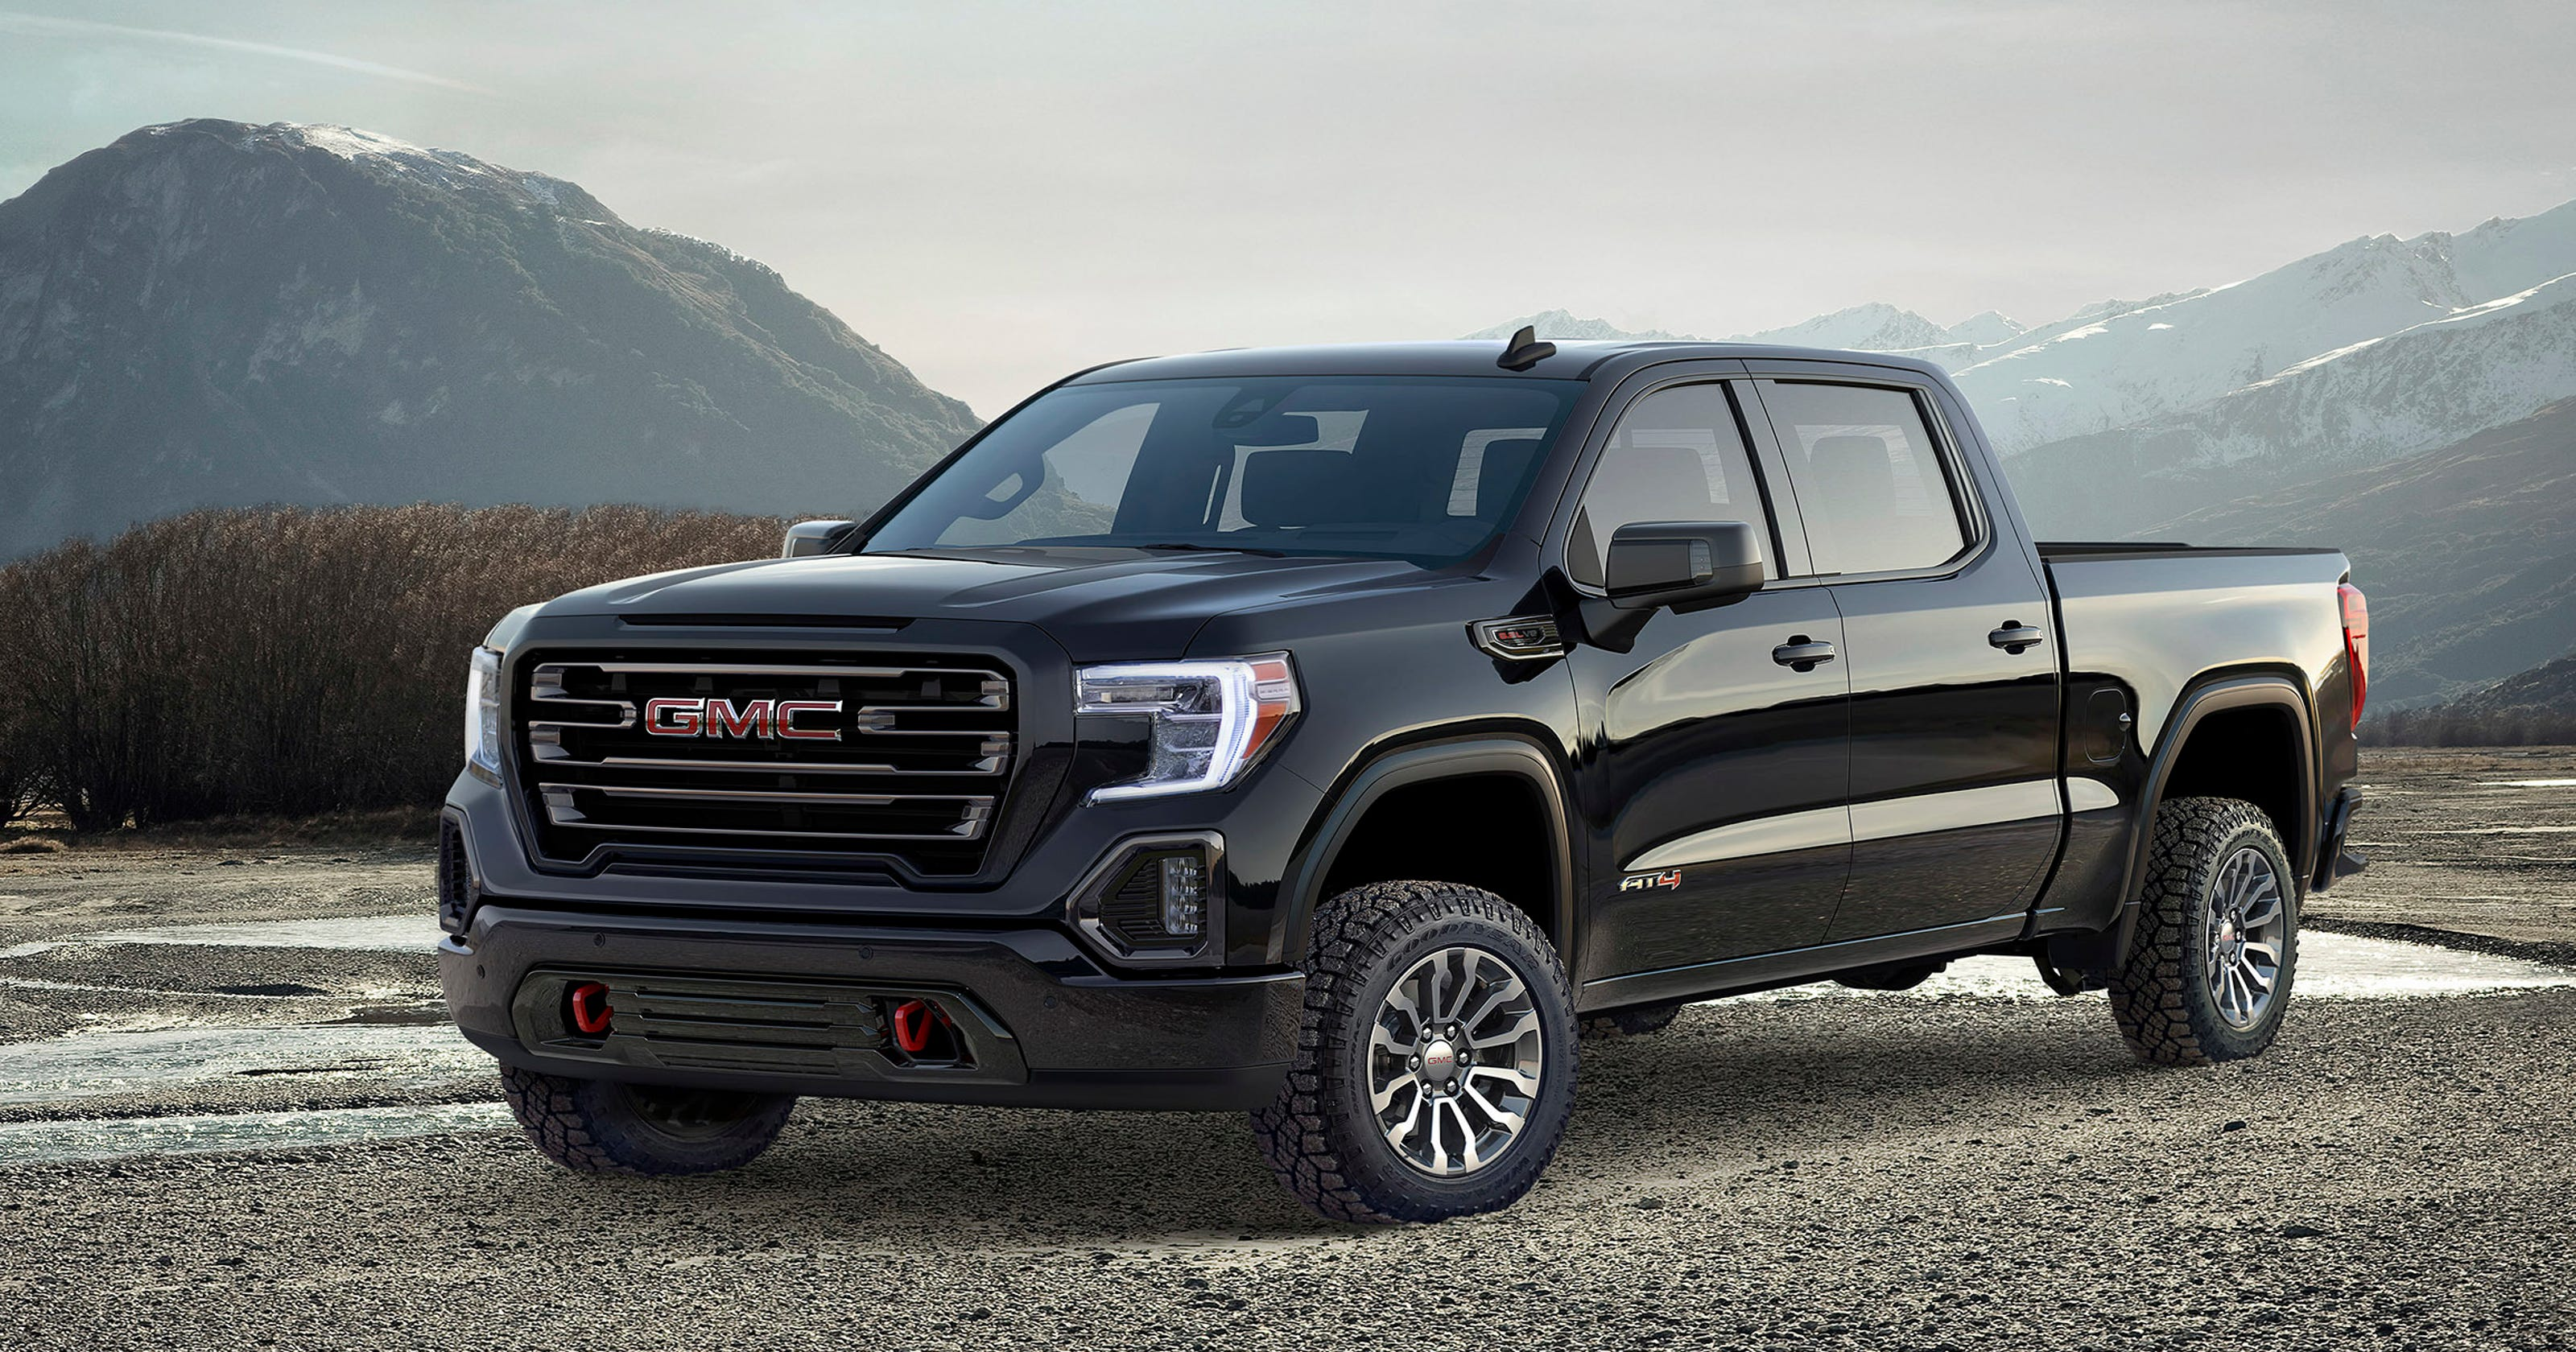 Full Size Pickups Edmunds Rounds Up The Latest News On Five 2019 Models